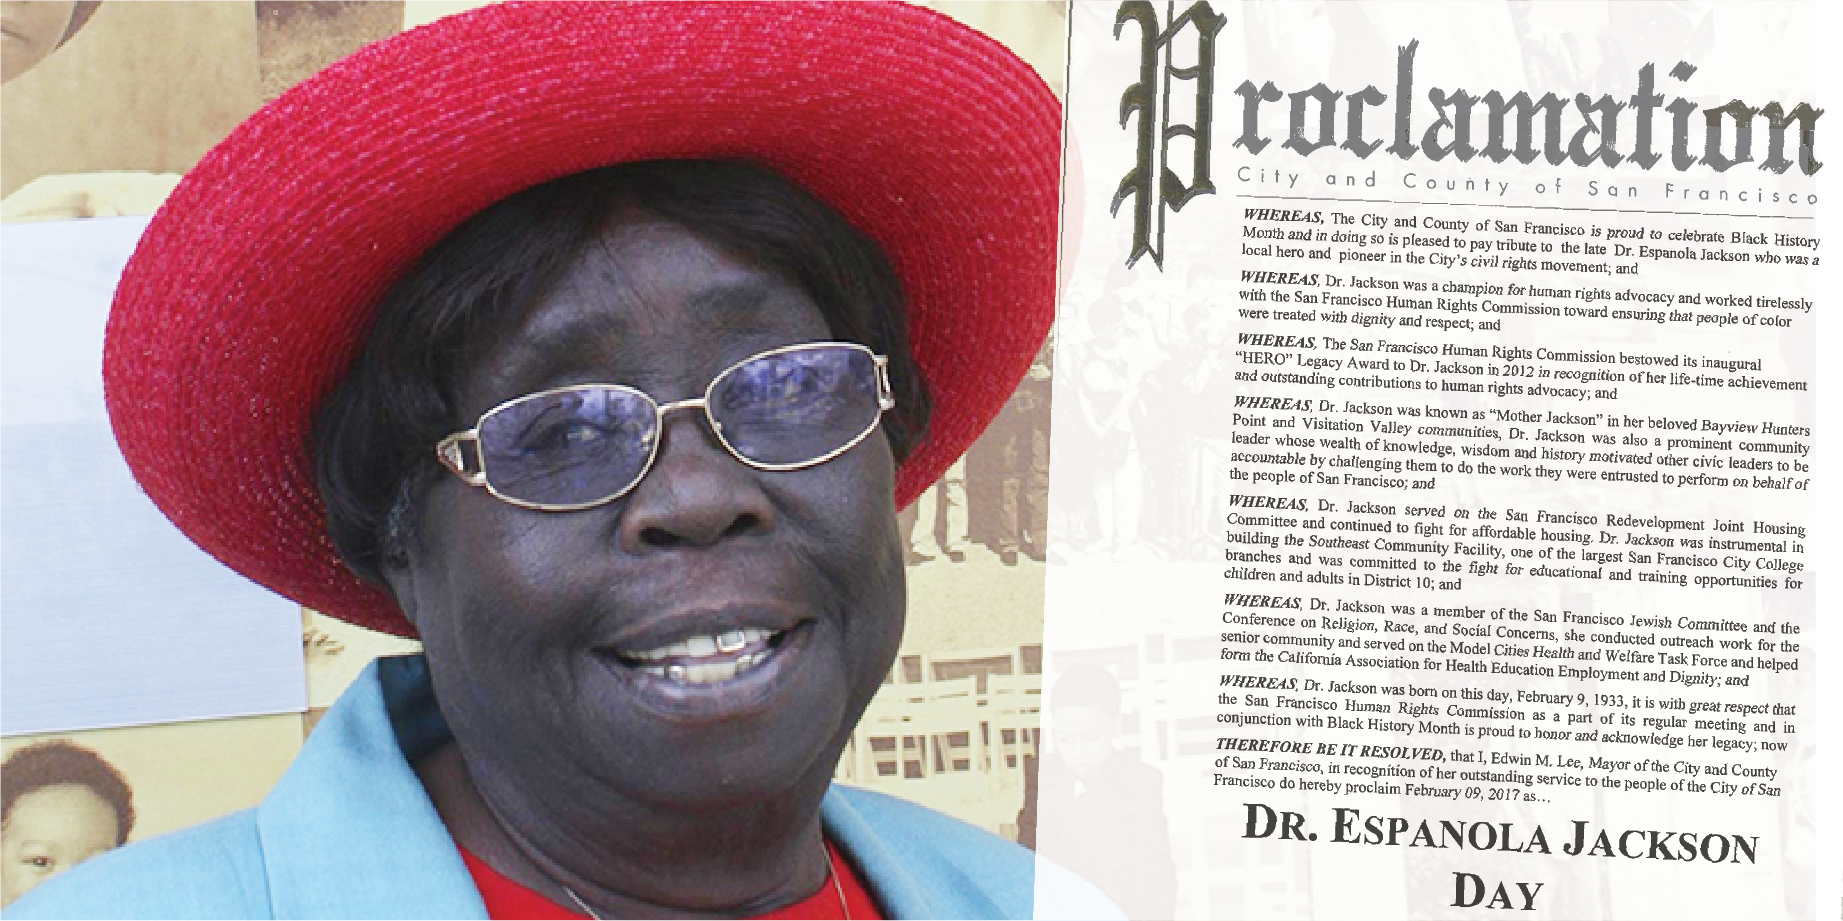 A photo of Espanola Jackson next to the Proclamation establishing a day in her honor